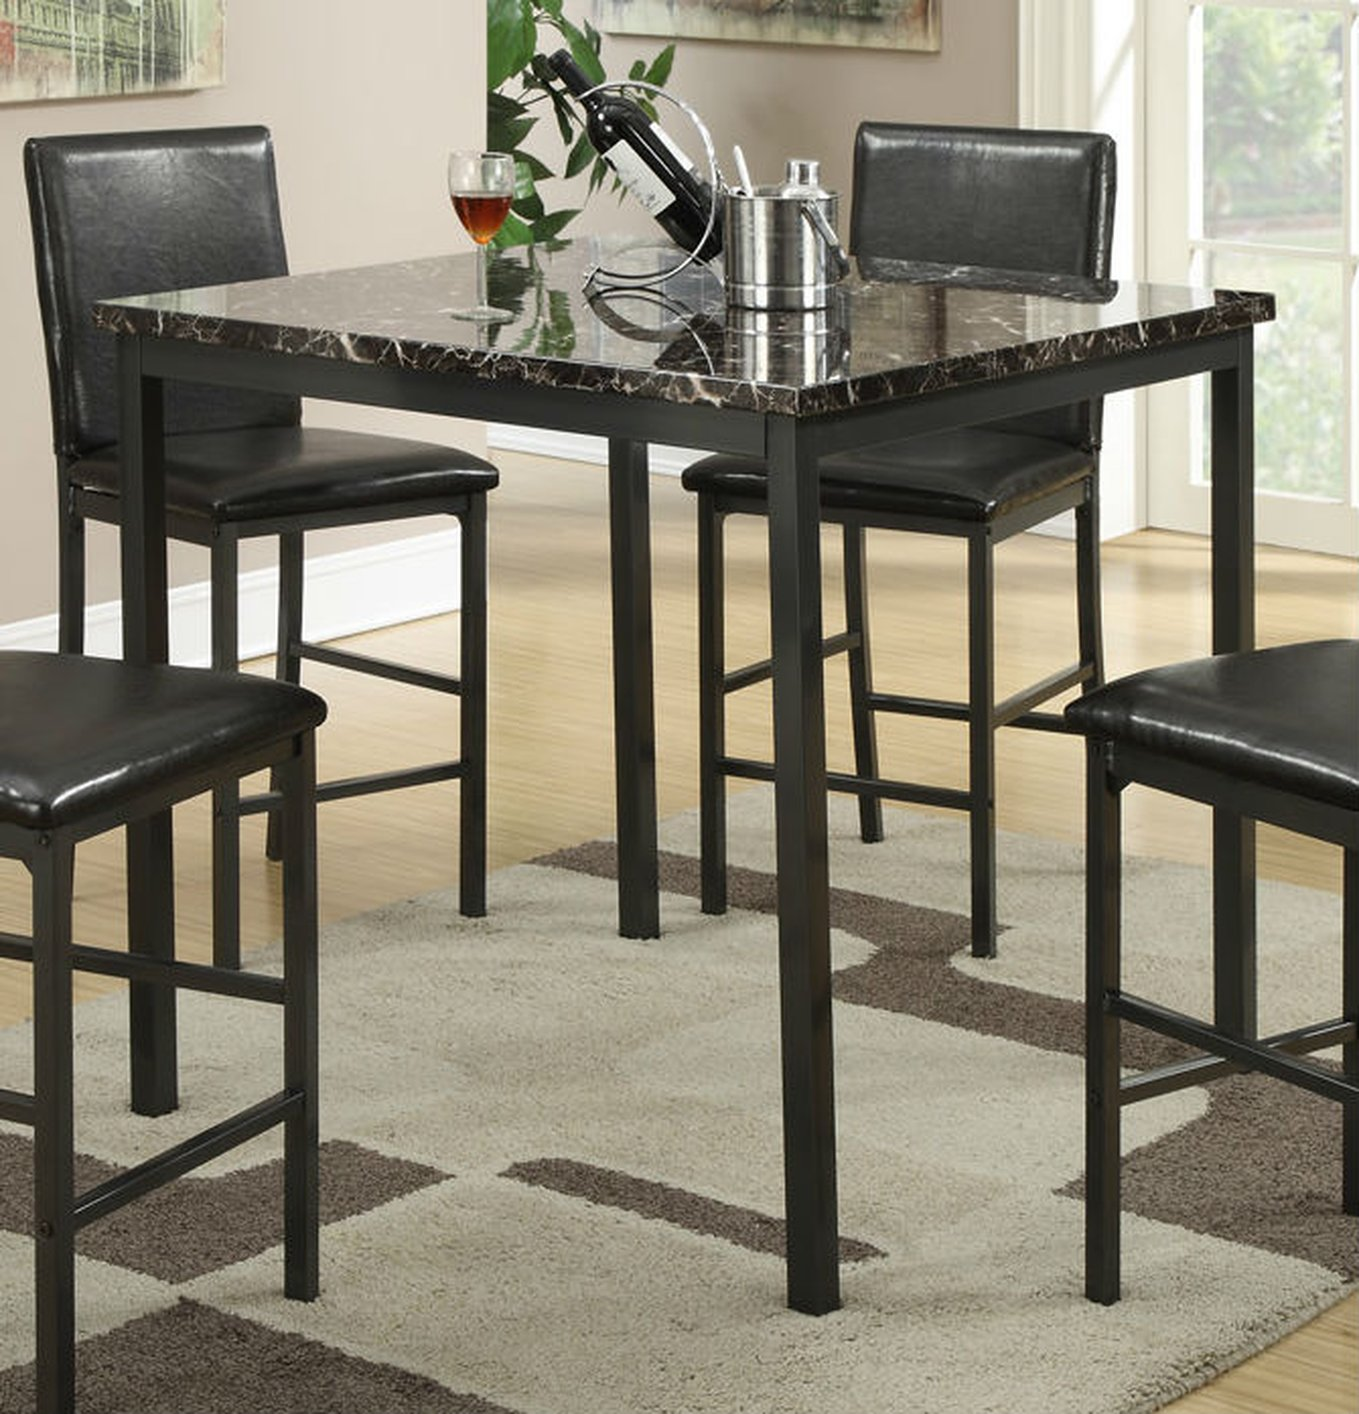 Black Marble Dining Table - Steal-A-Sofa Furniture Outlet Los Angeles CA